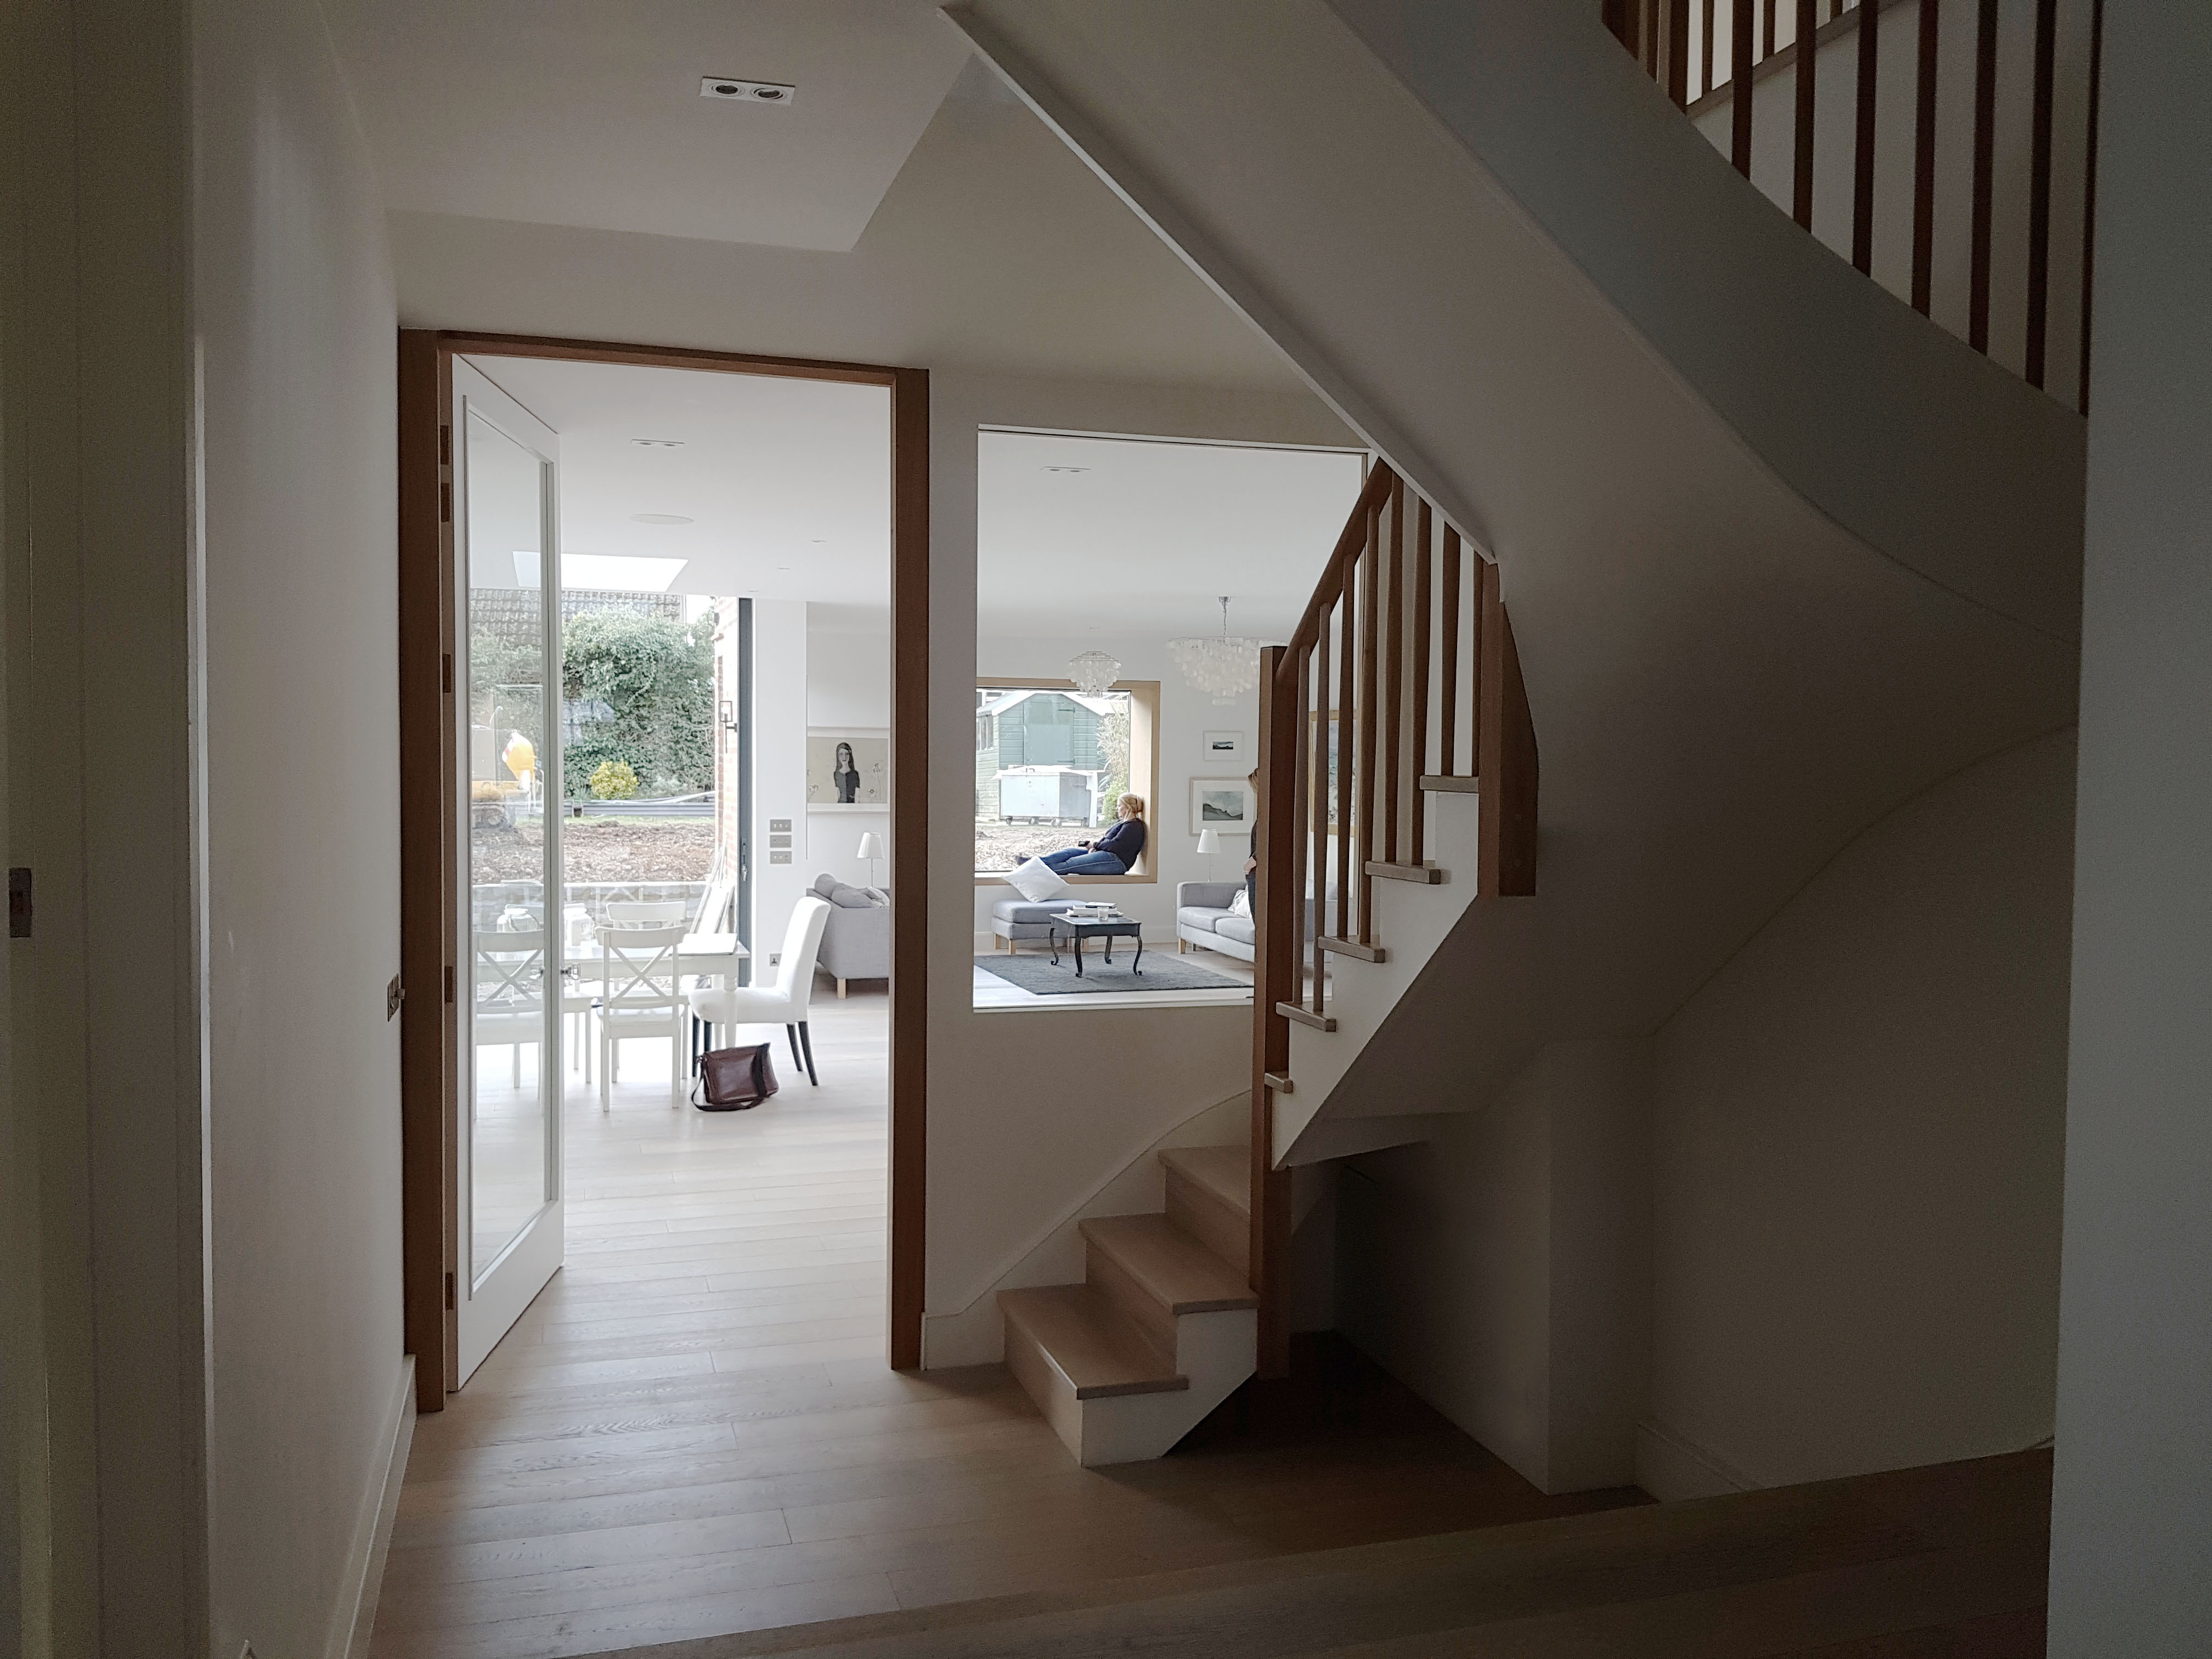 creativemass - rear extension and internal remodelling, light, staircase, open plan living, openings, London